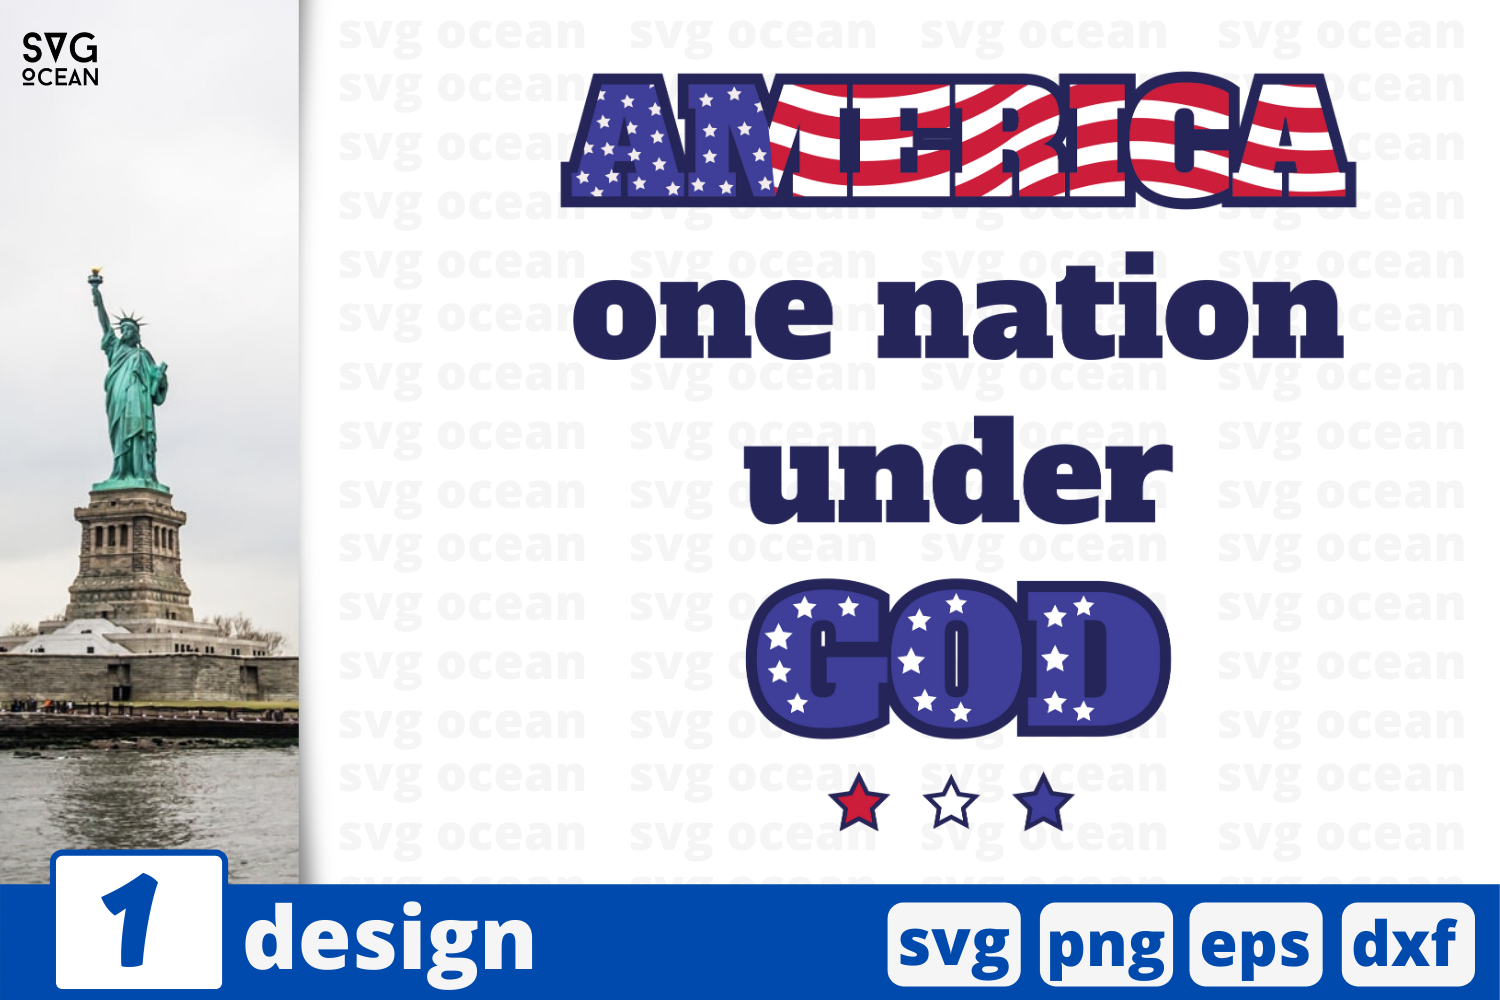 Download Free 1 America One Nation Under God Graphic By Svgocean Creative for Cricut Explore, Silhouette and other cutting machines.